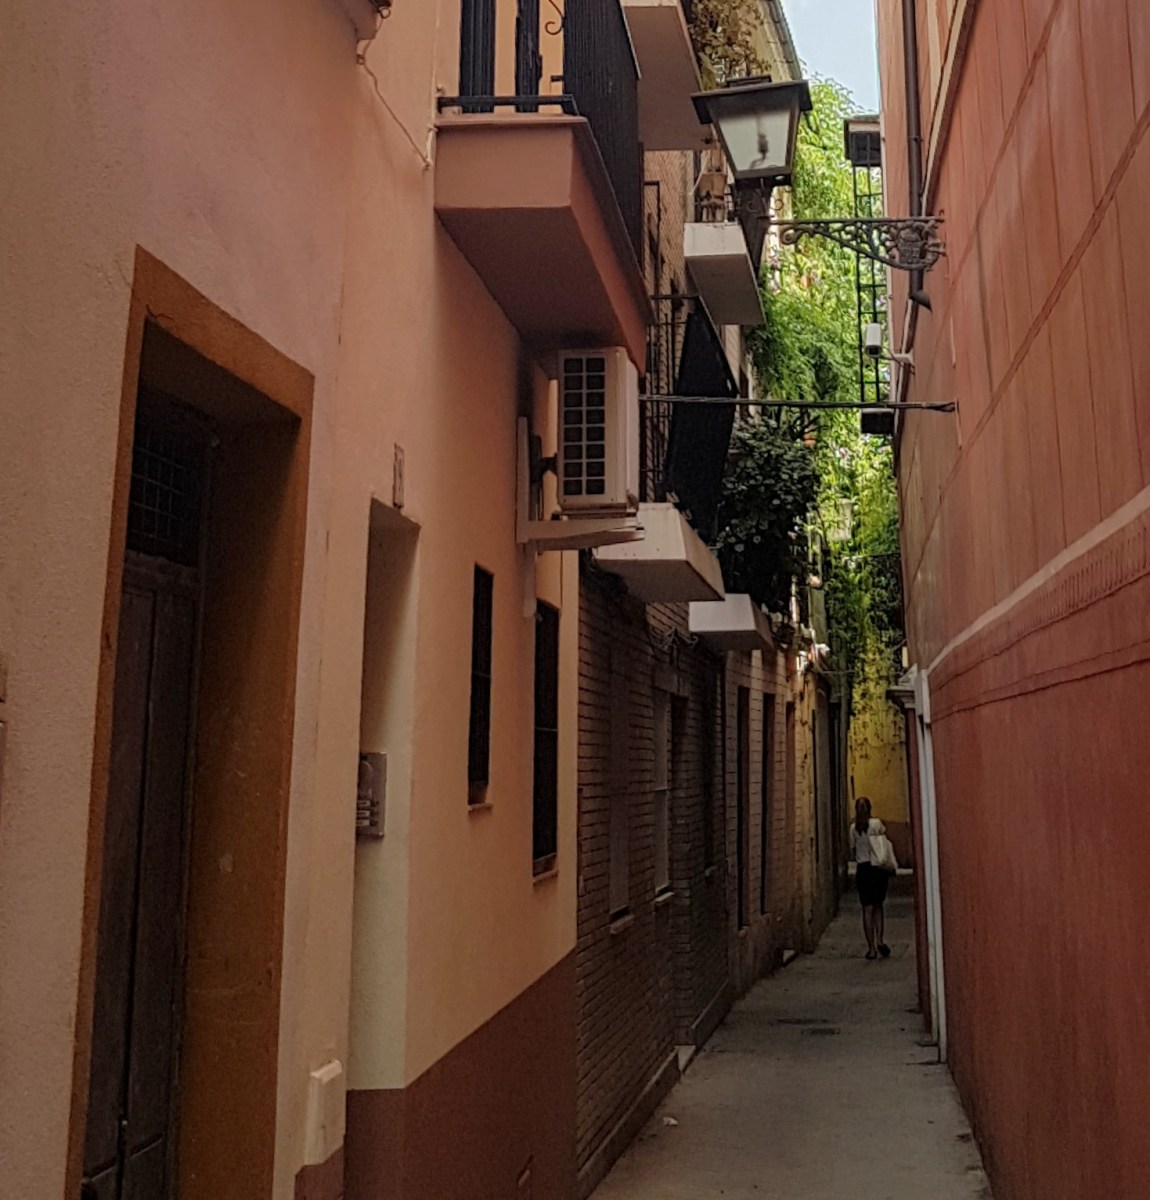 Our narrow street in the old part of Seville